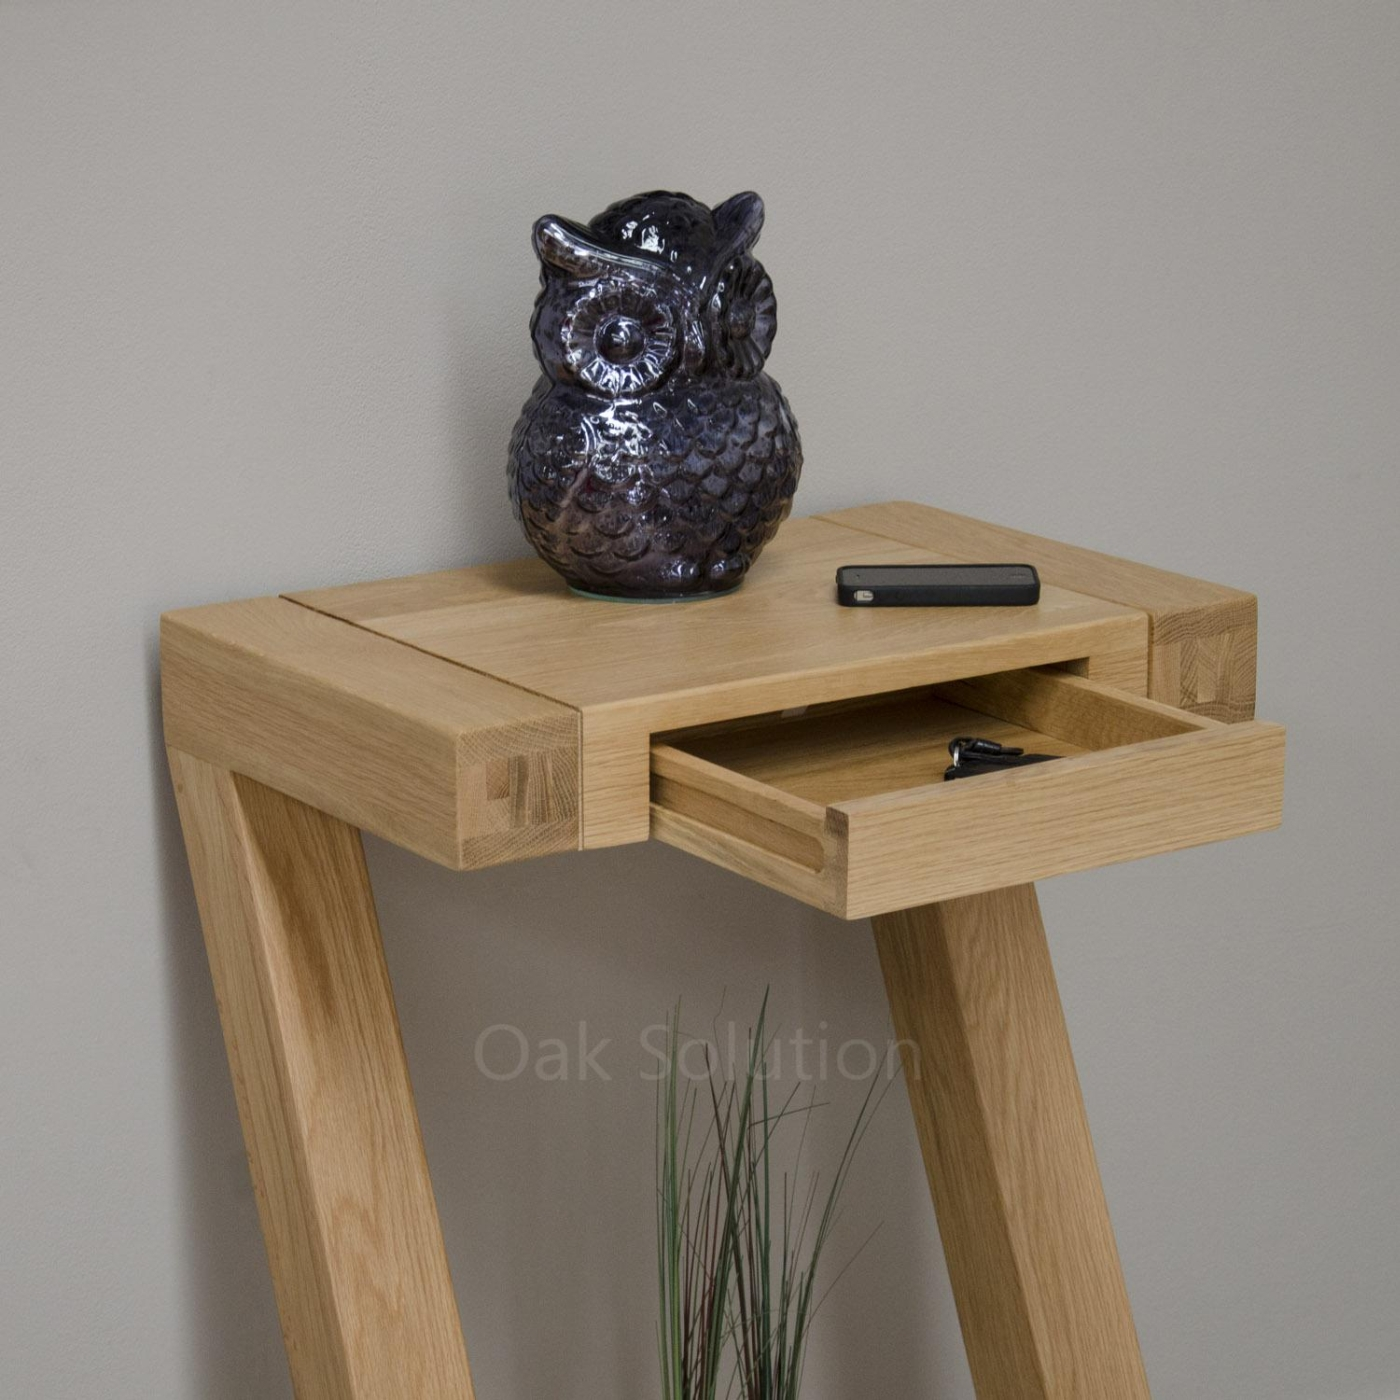 Z solid oak designer furniture small hall console hallway  : 66565 from www.ebay.co.uk size 1400 x 1400 jpeg 852kB